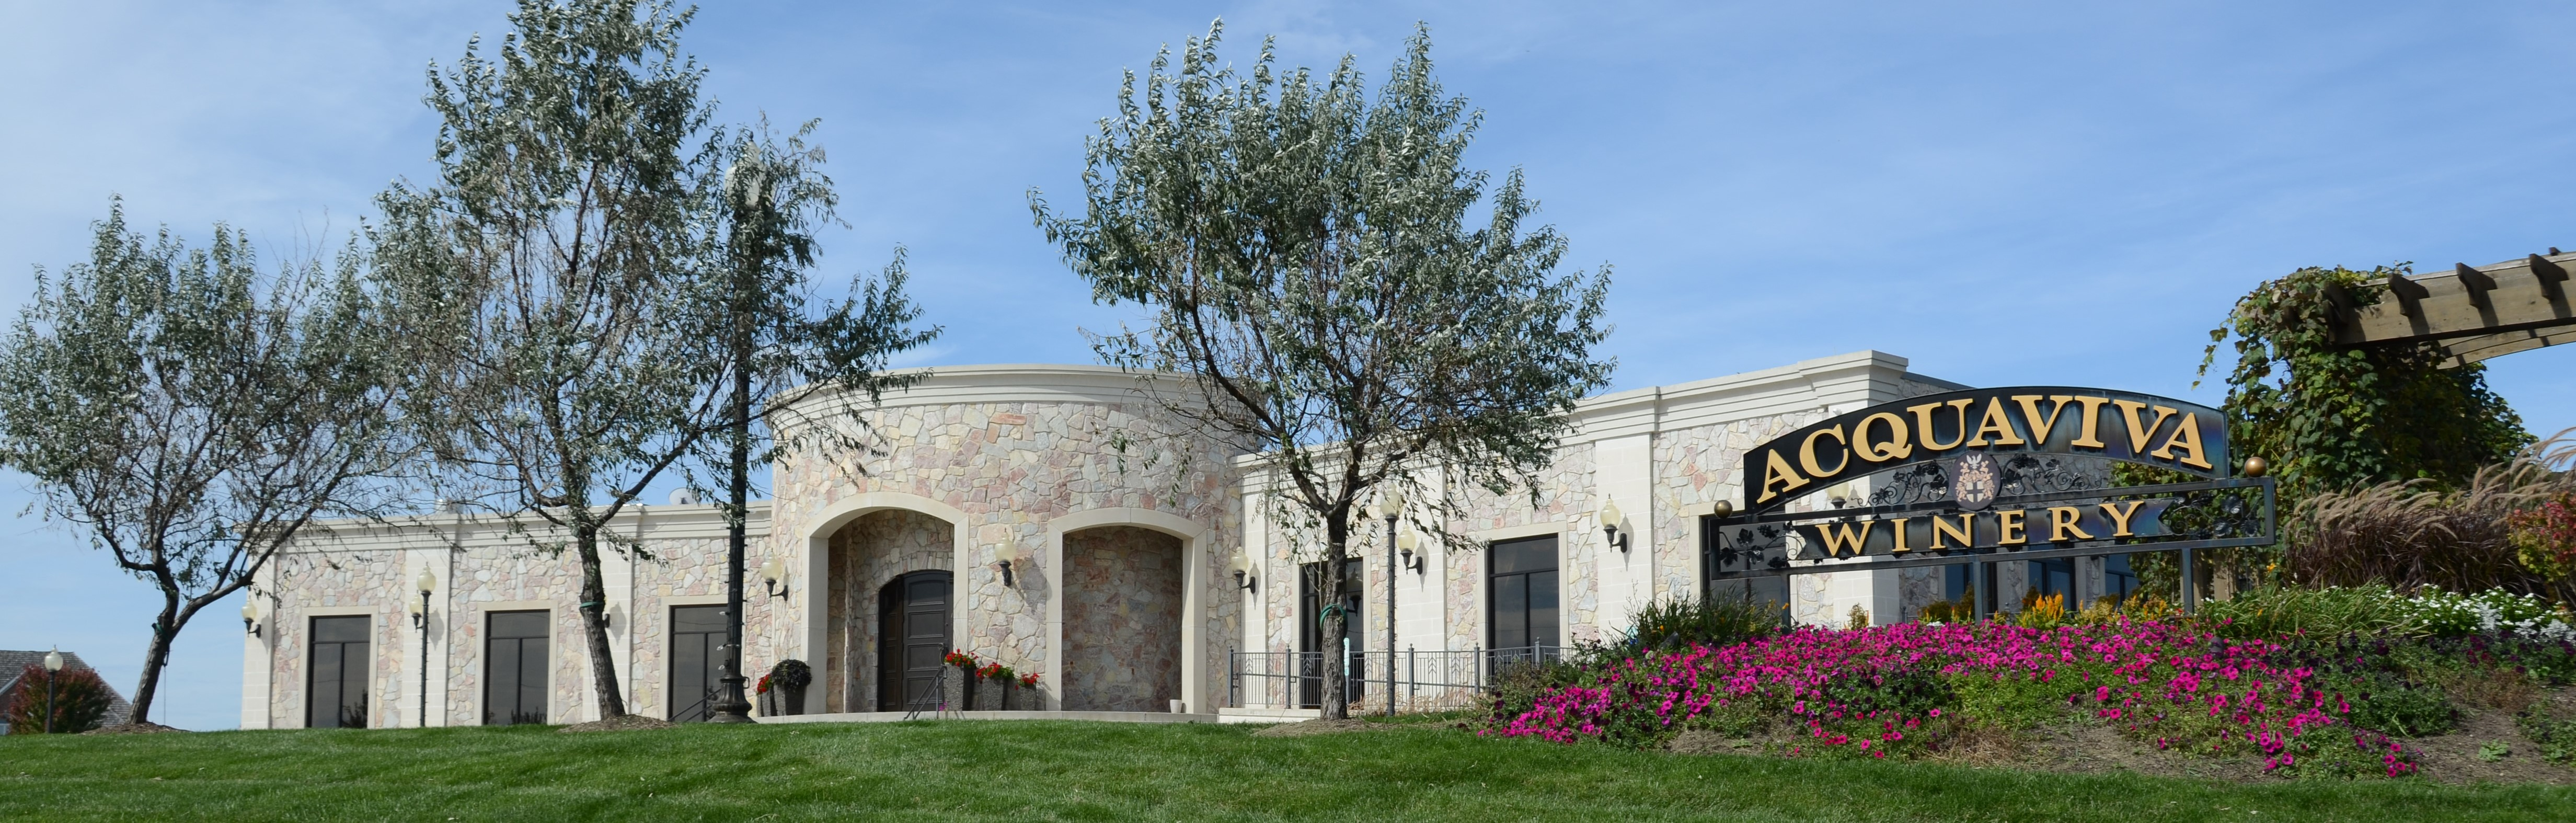 Easter at Acquaviva Winery, Maple Park IL